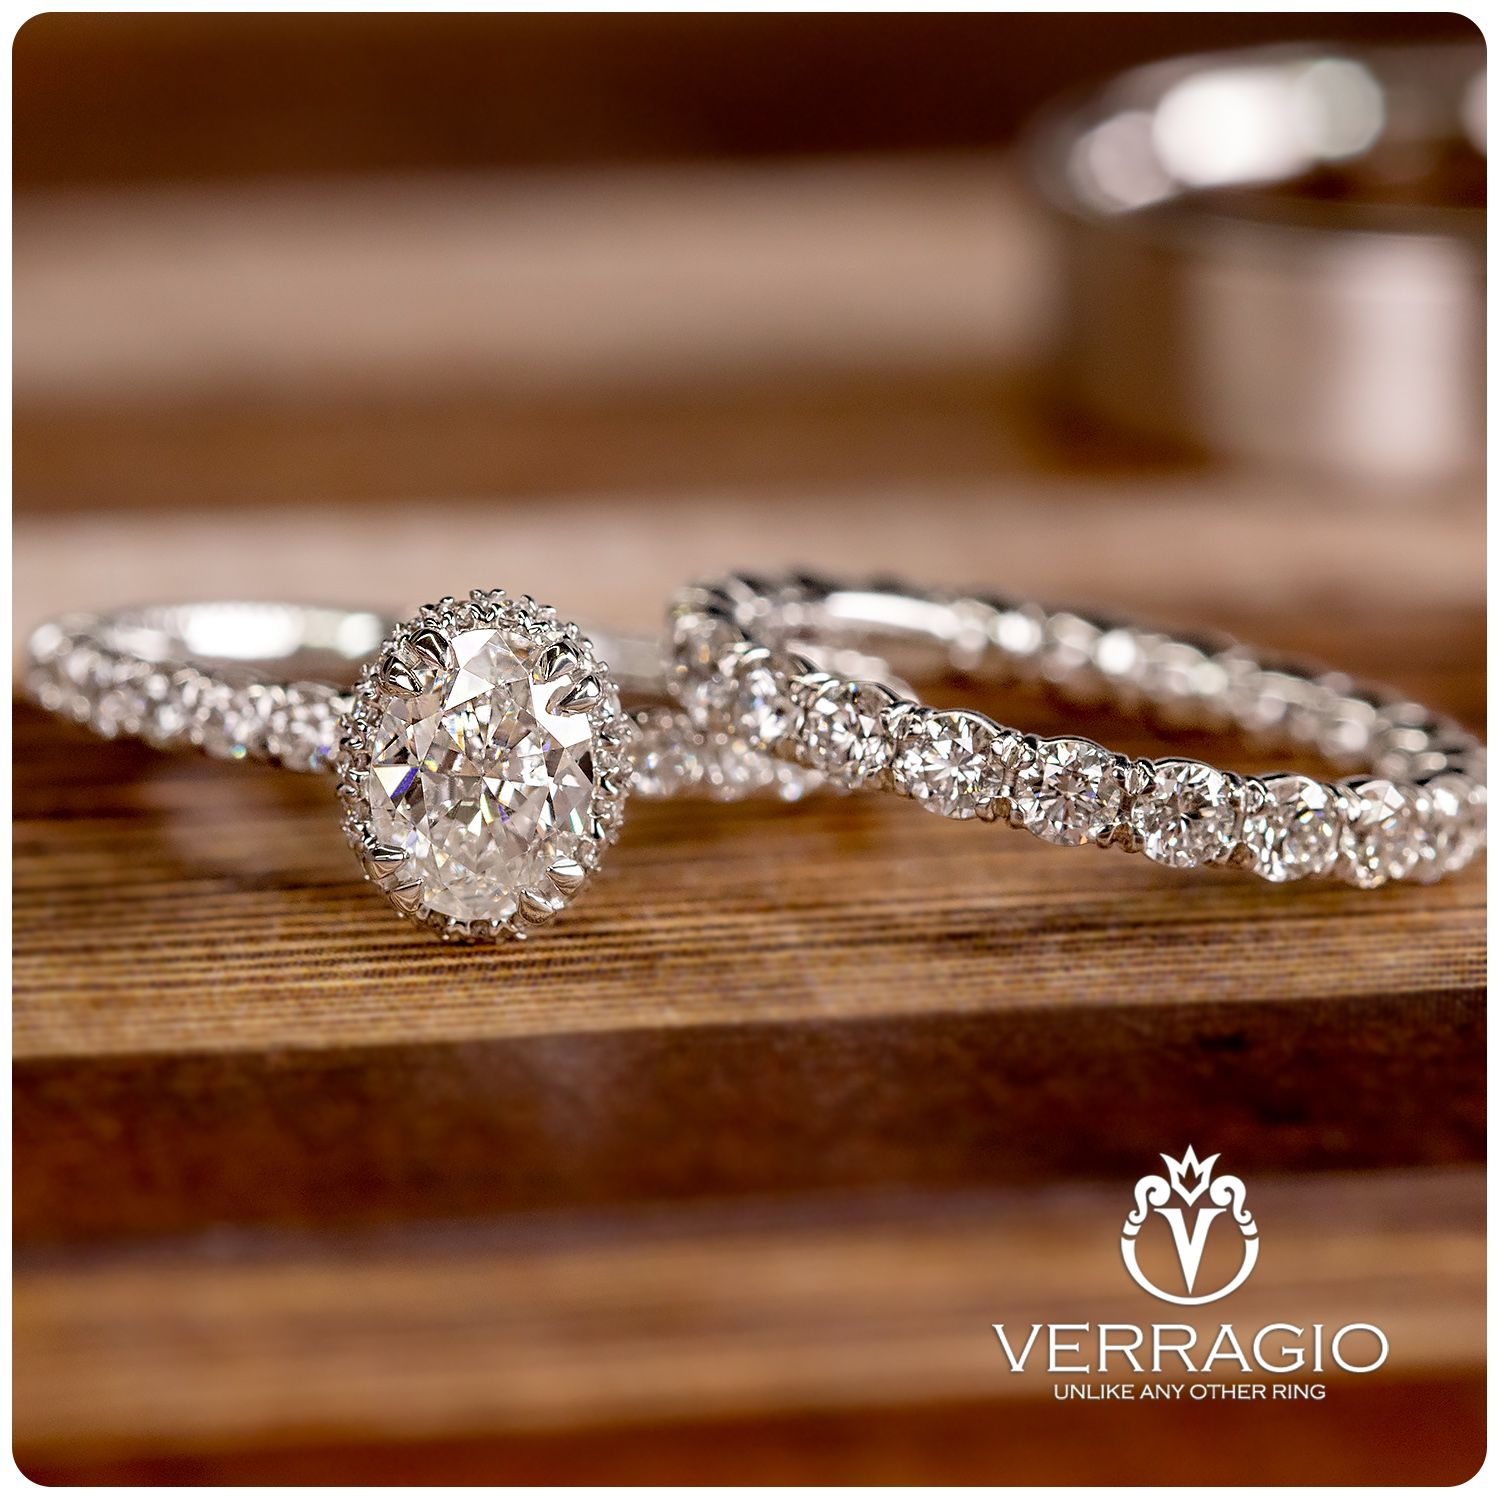 Verragio Engagement Ring And Wedding Set Pave Diamond Wedding Band Pave Diam Pave Diamond Wedding Bands Verragio Engagement Rings Pave Diamond Wedding Ring